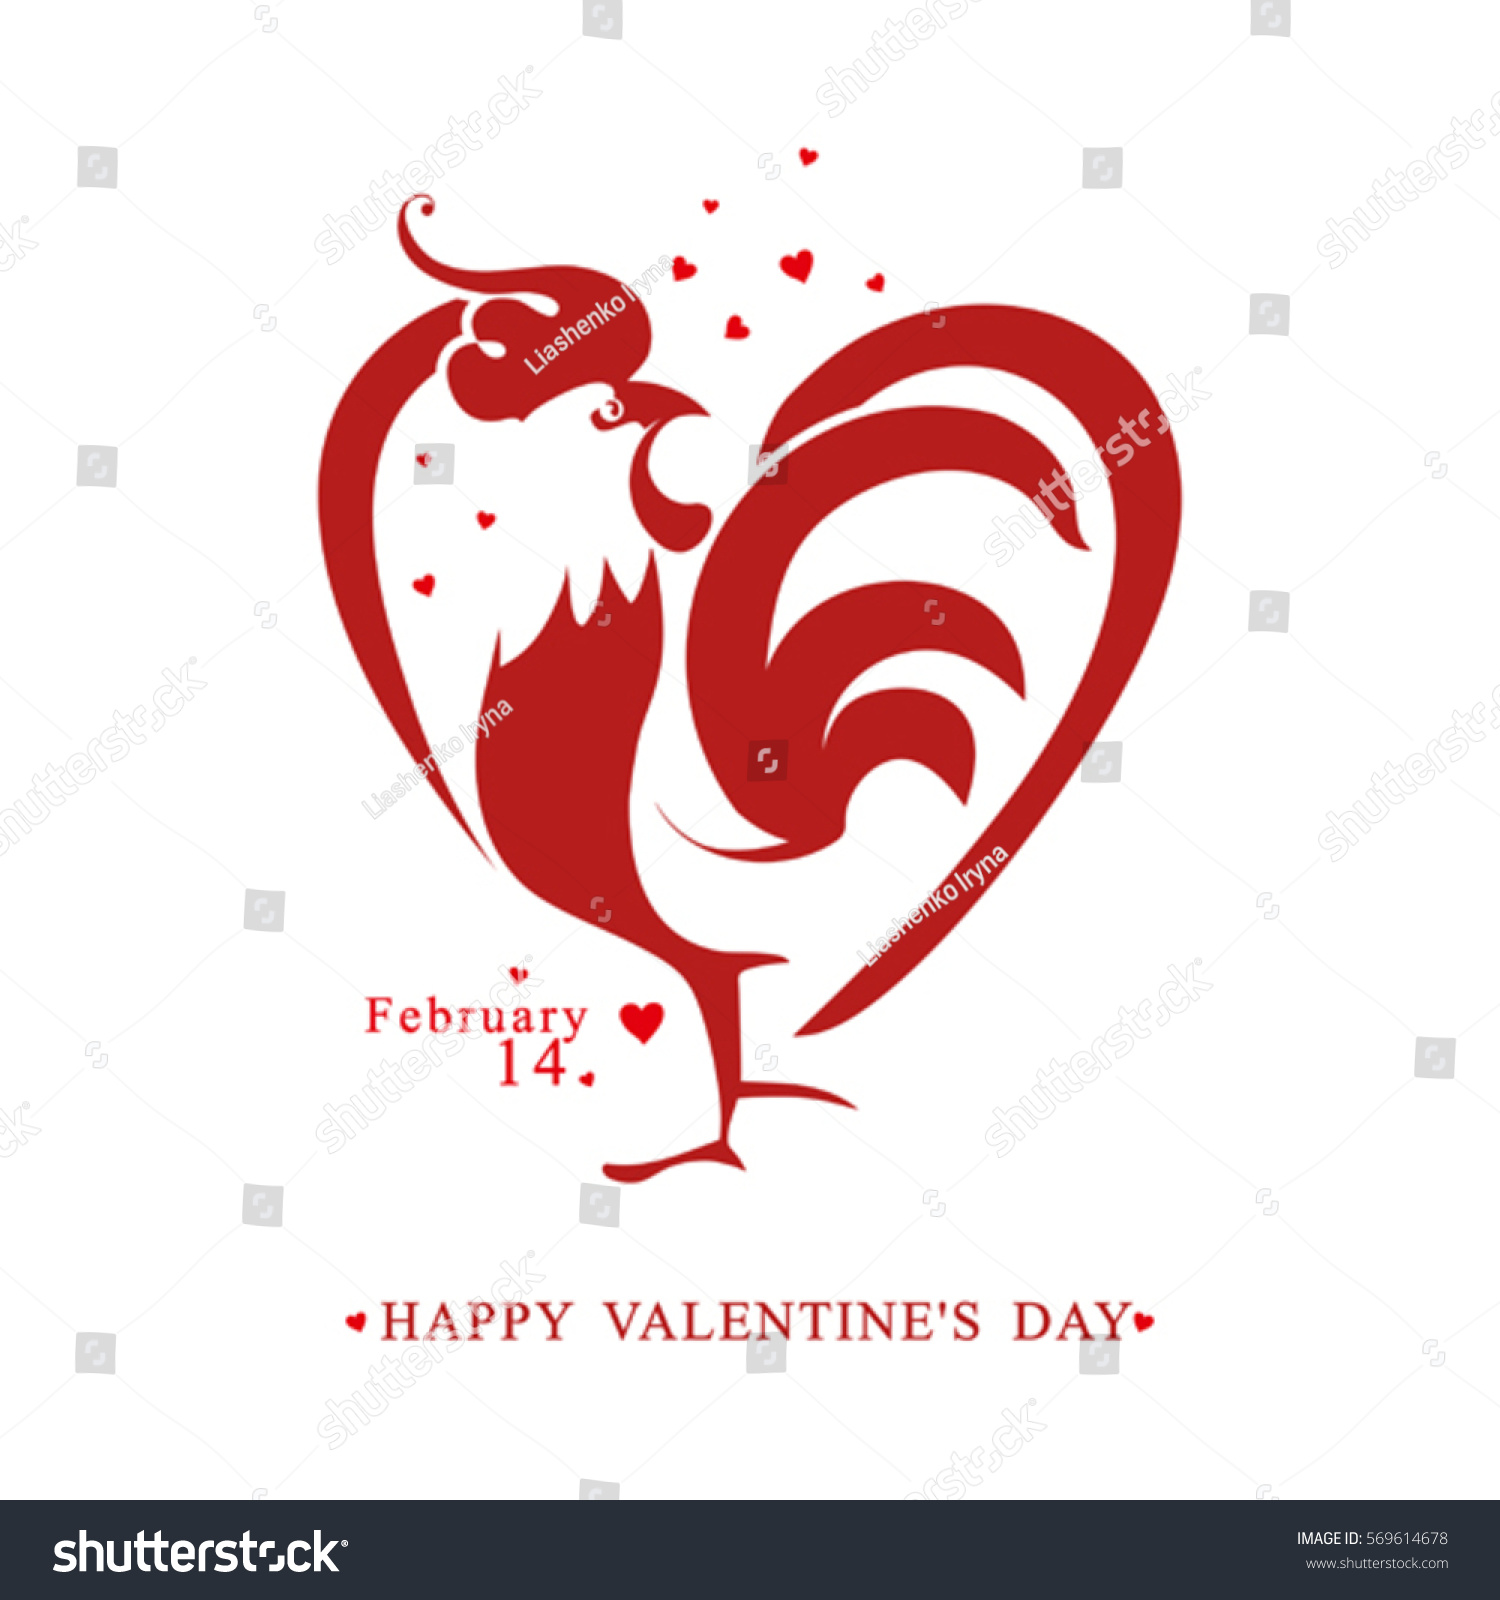 Heart rooster template valentines day symbol stock vector heart rooster template for valentines day symbol on the chinese calendar buycottarizona